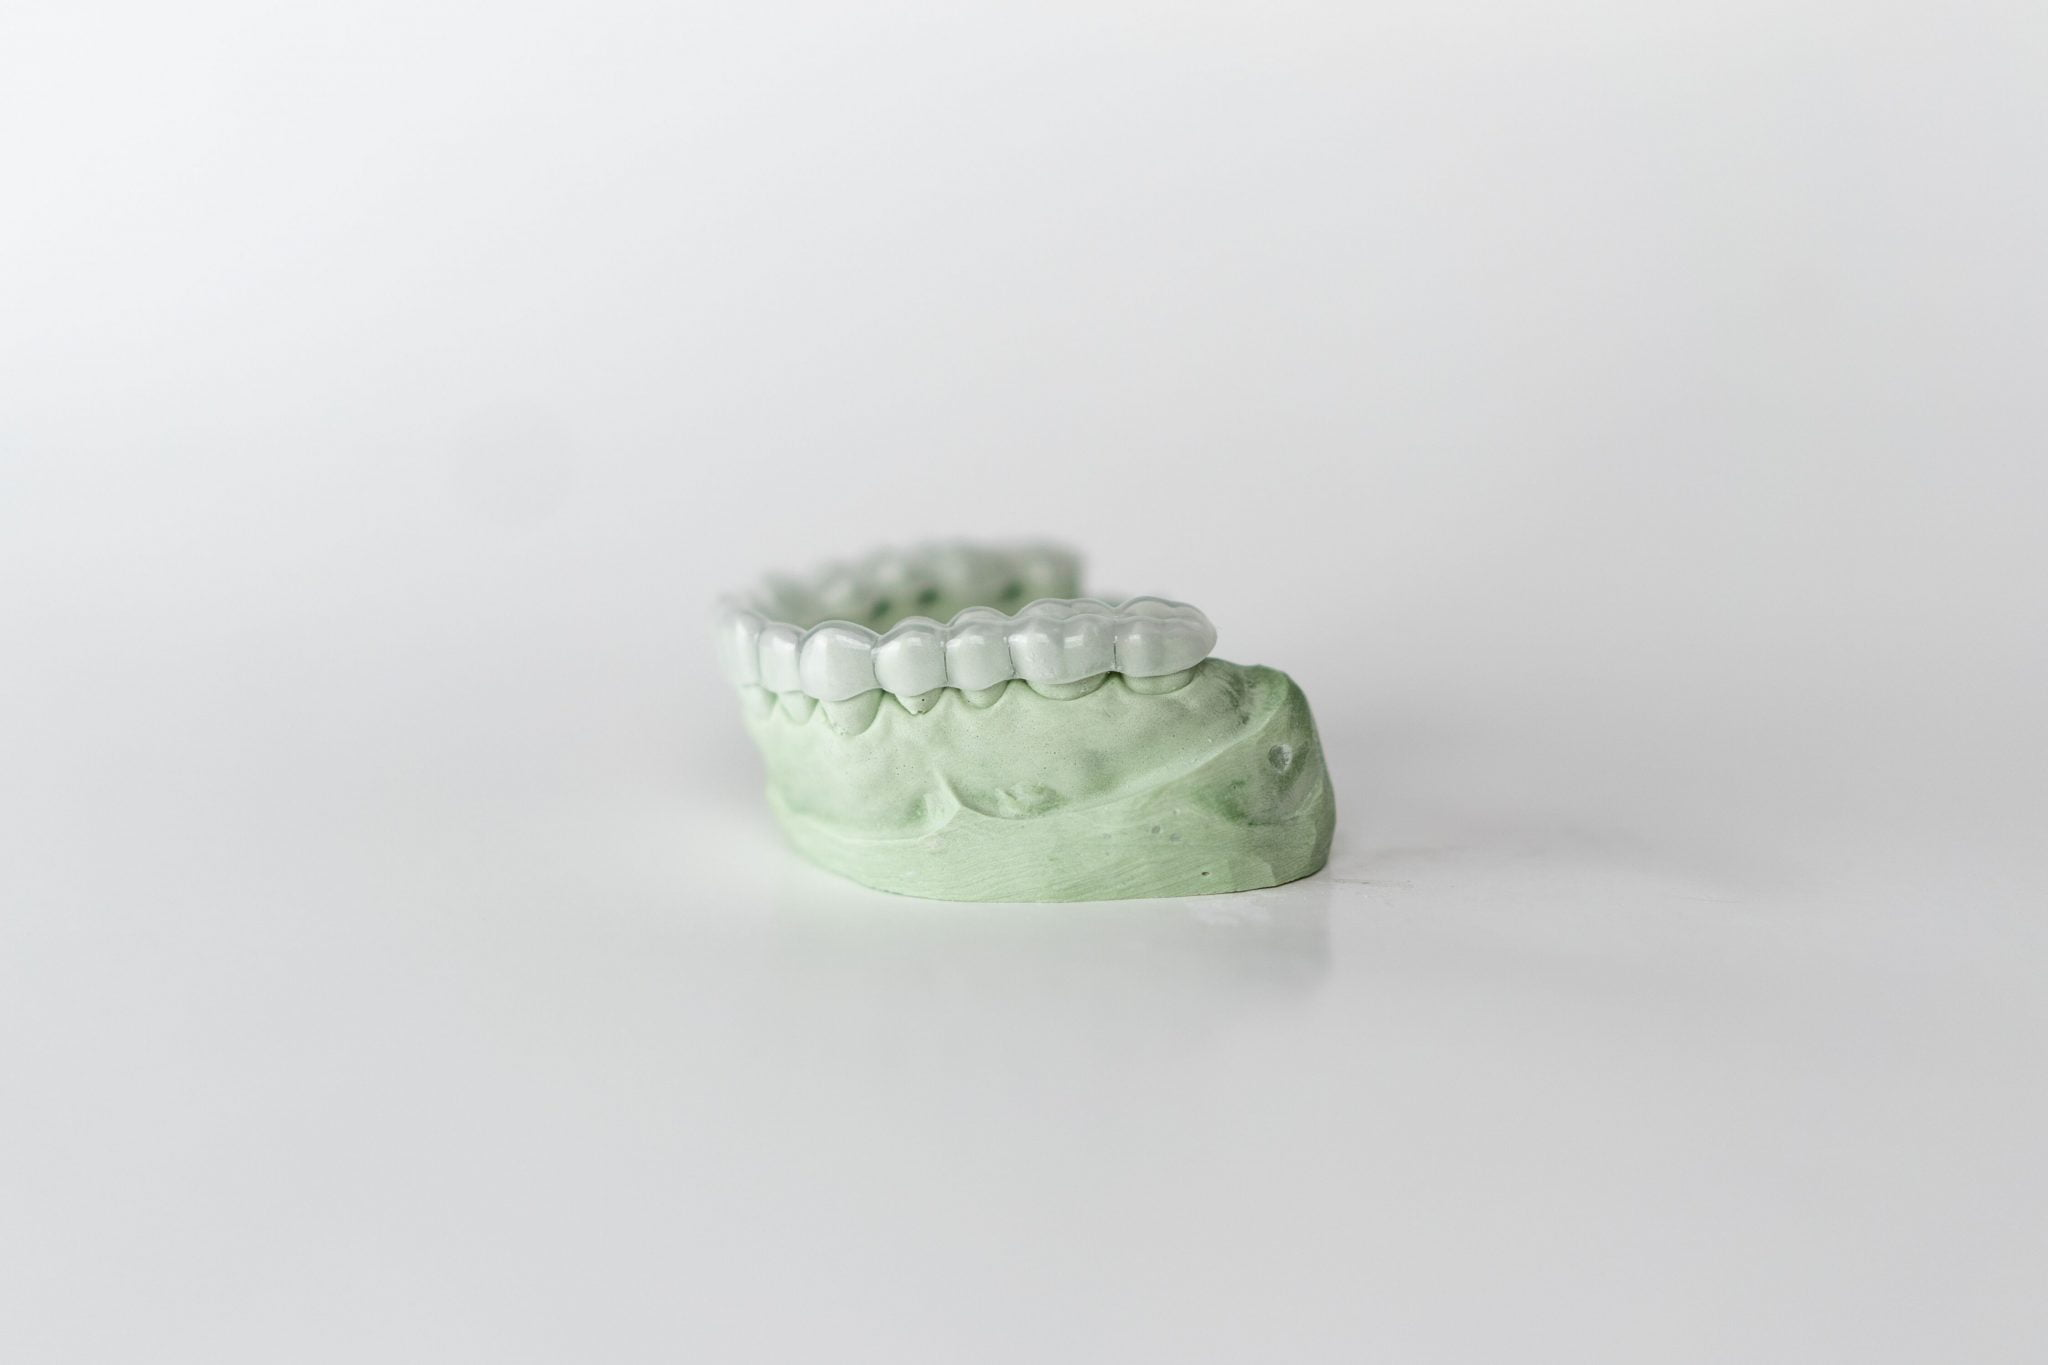 sentinel mouthguards soft dental night guard 3